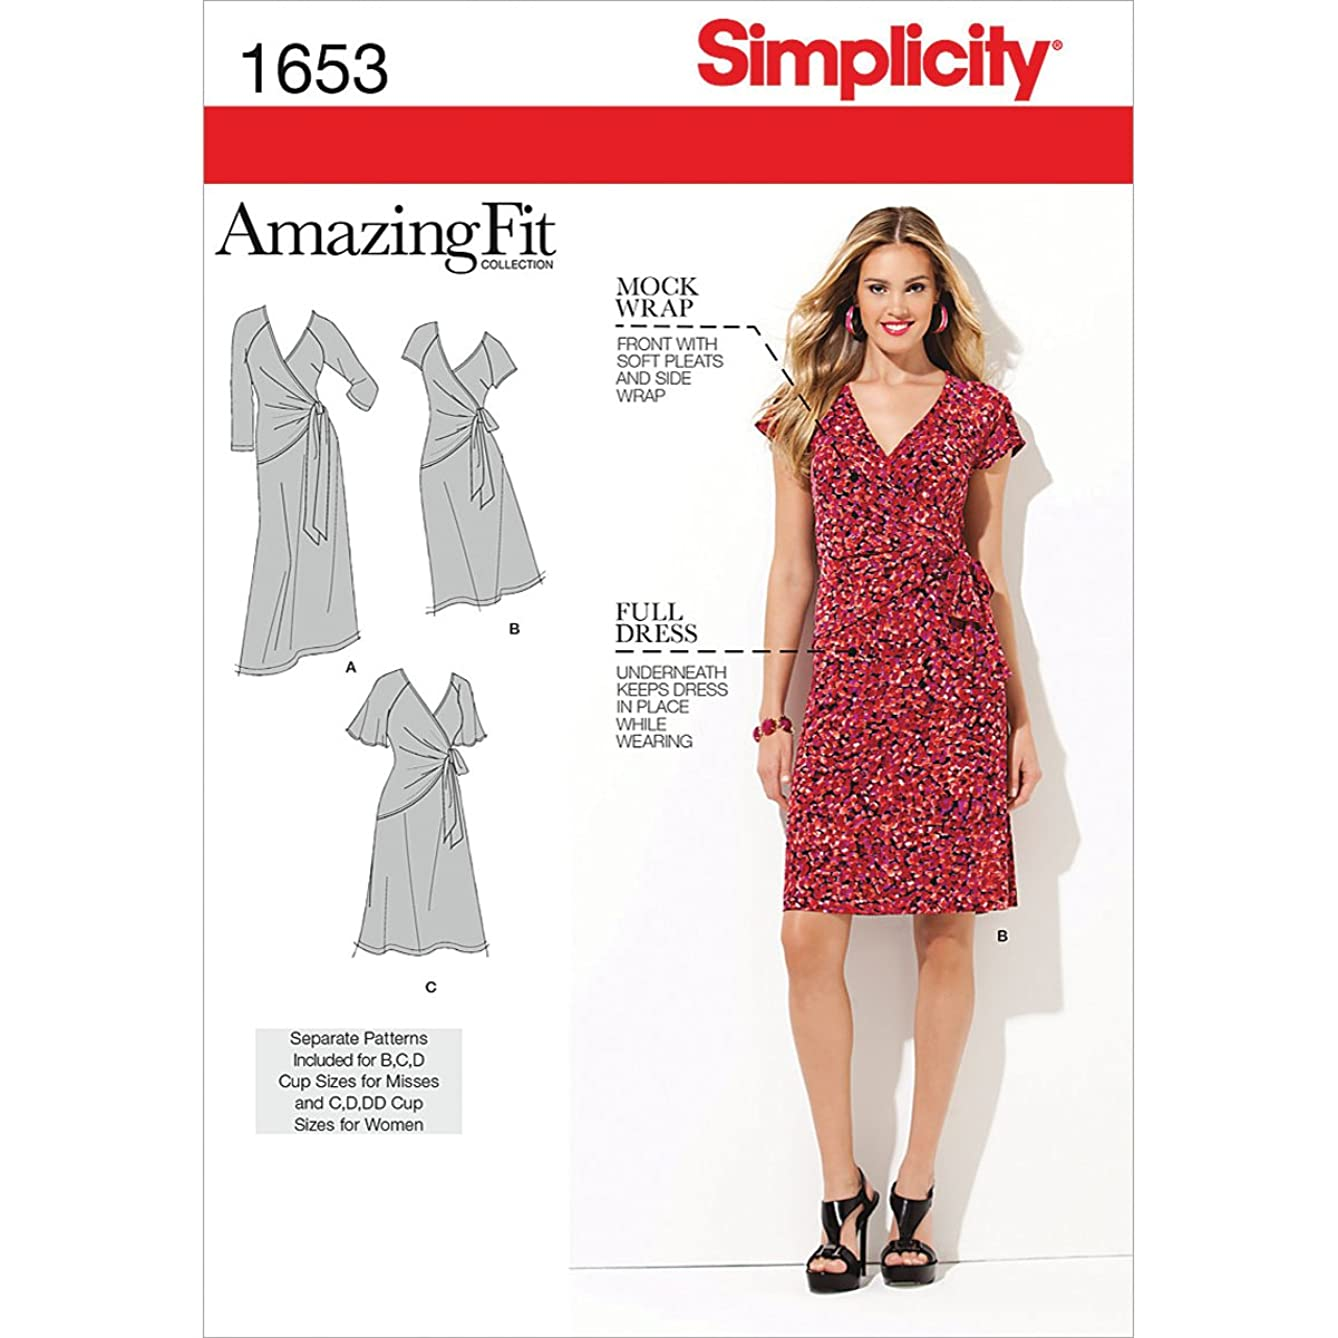 Simplicity Amazing Fit Pattern 1653 Womens Knit Dress with Variations Sizes 20W-28W